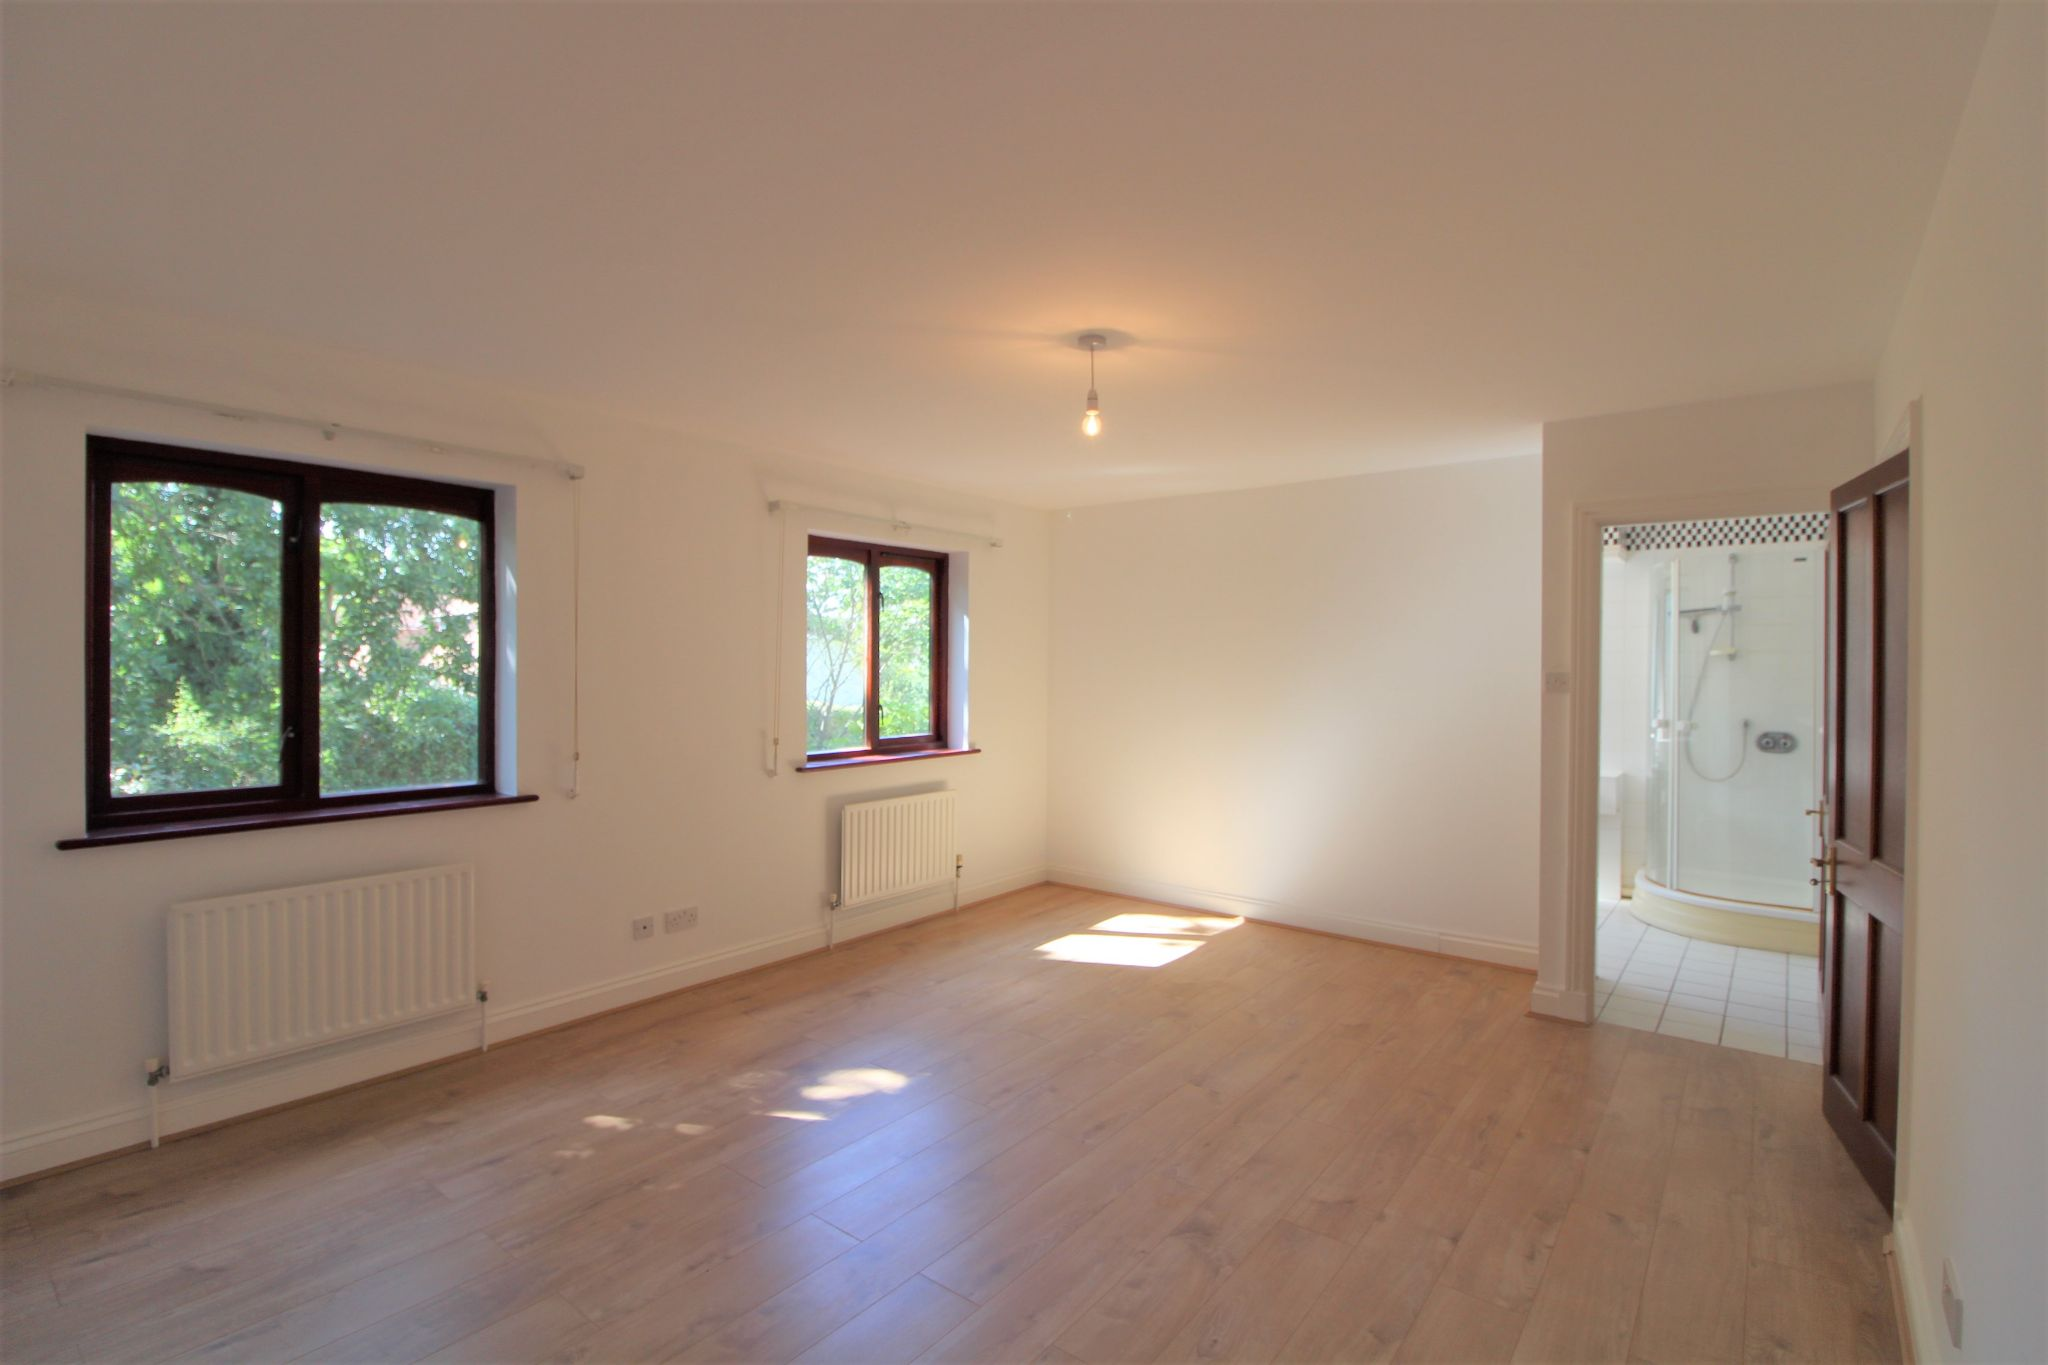 4 bedroom detached house SSTC in Cuffley - Photograph 8